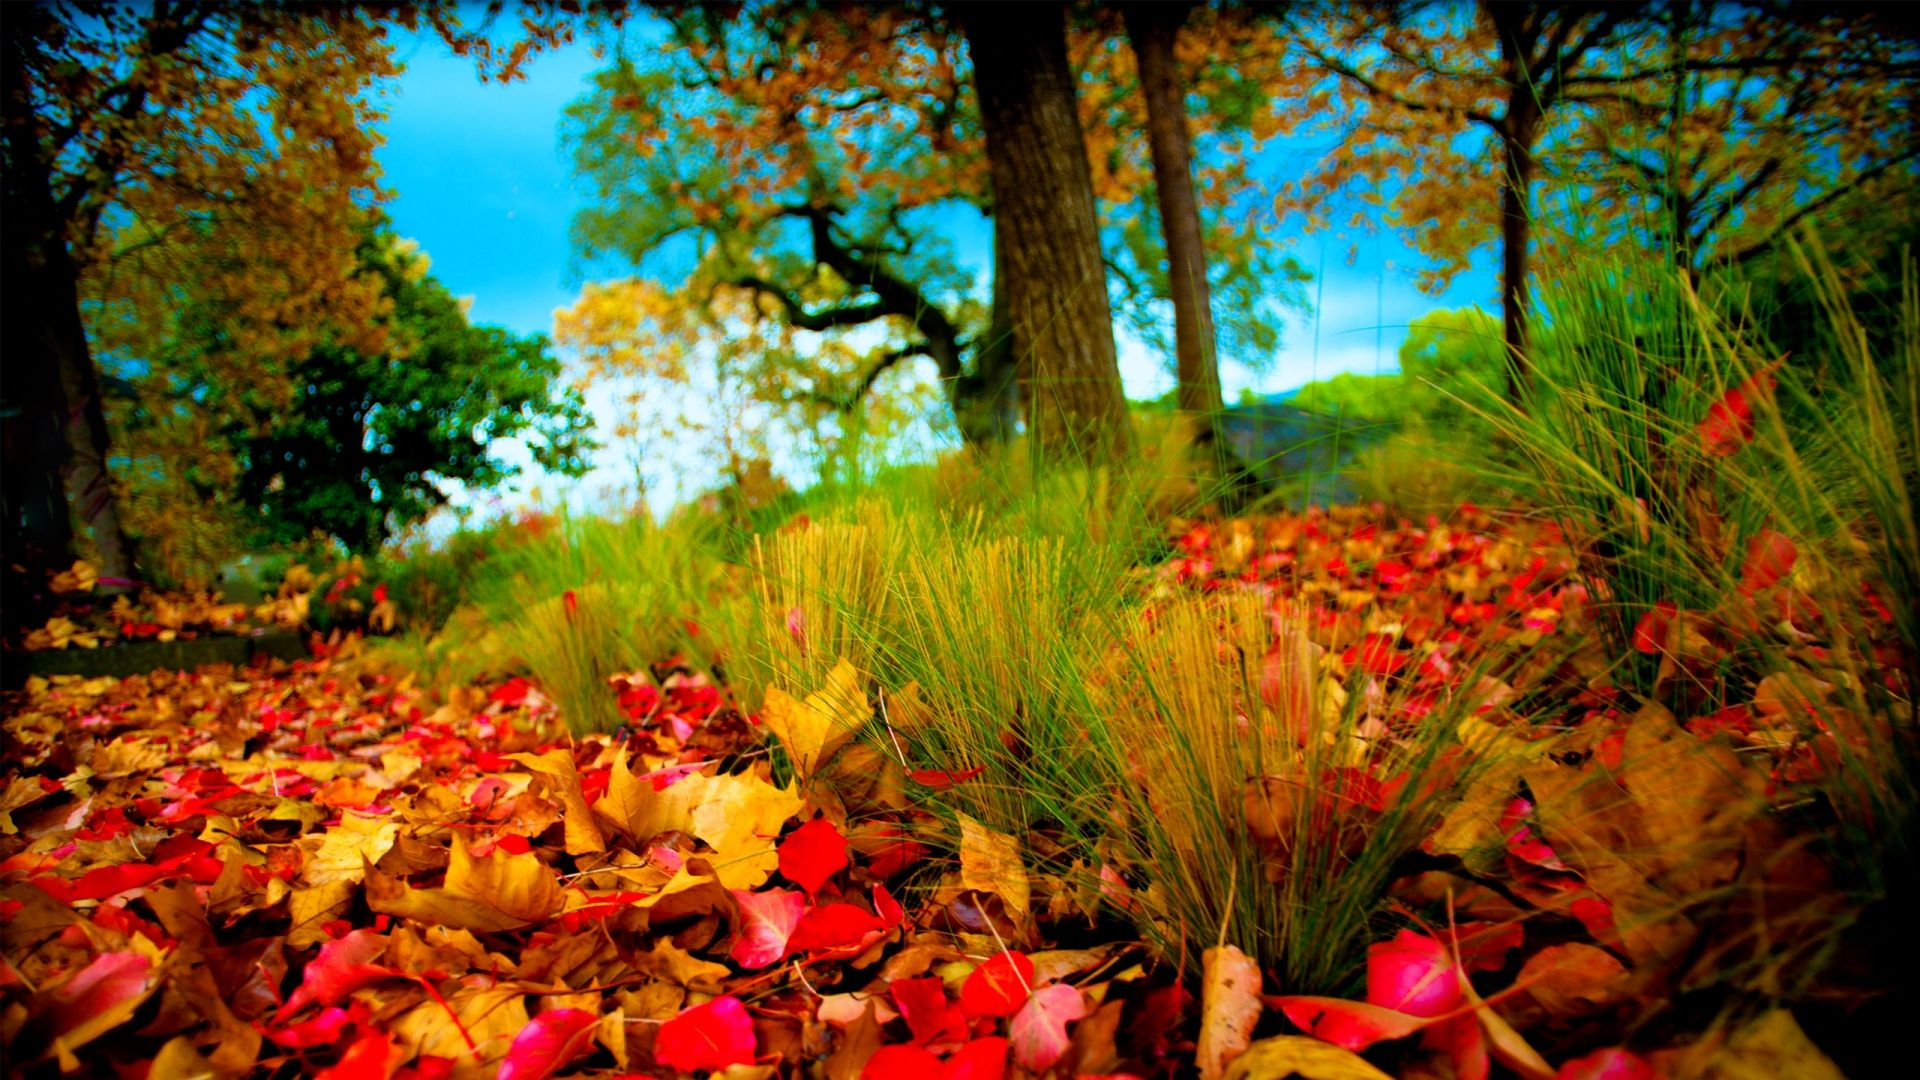 Wallpaper Hd Phd Wallpaper Autumn Leaves And Fall Colors For X Hdtv ...